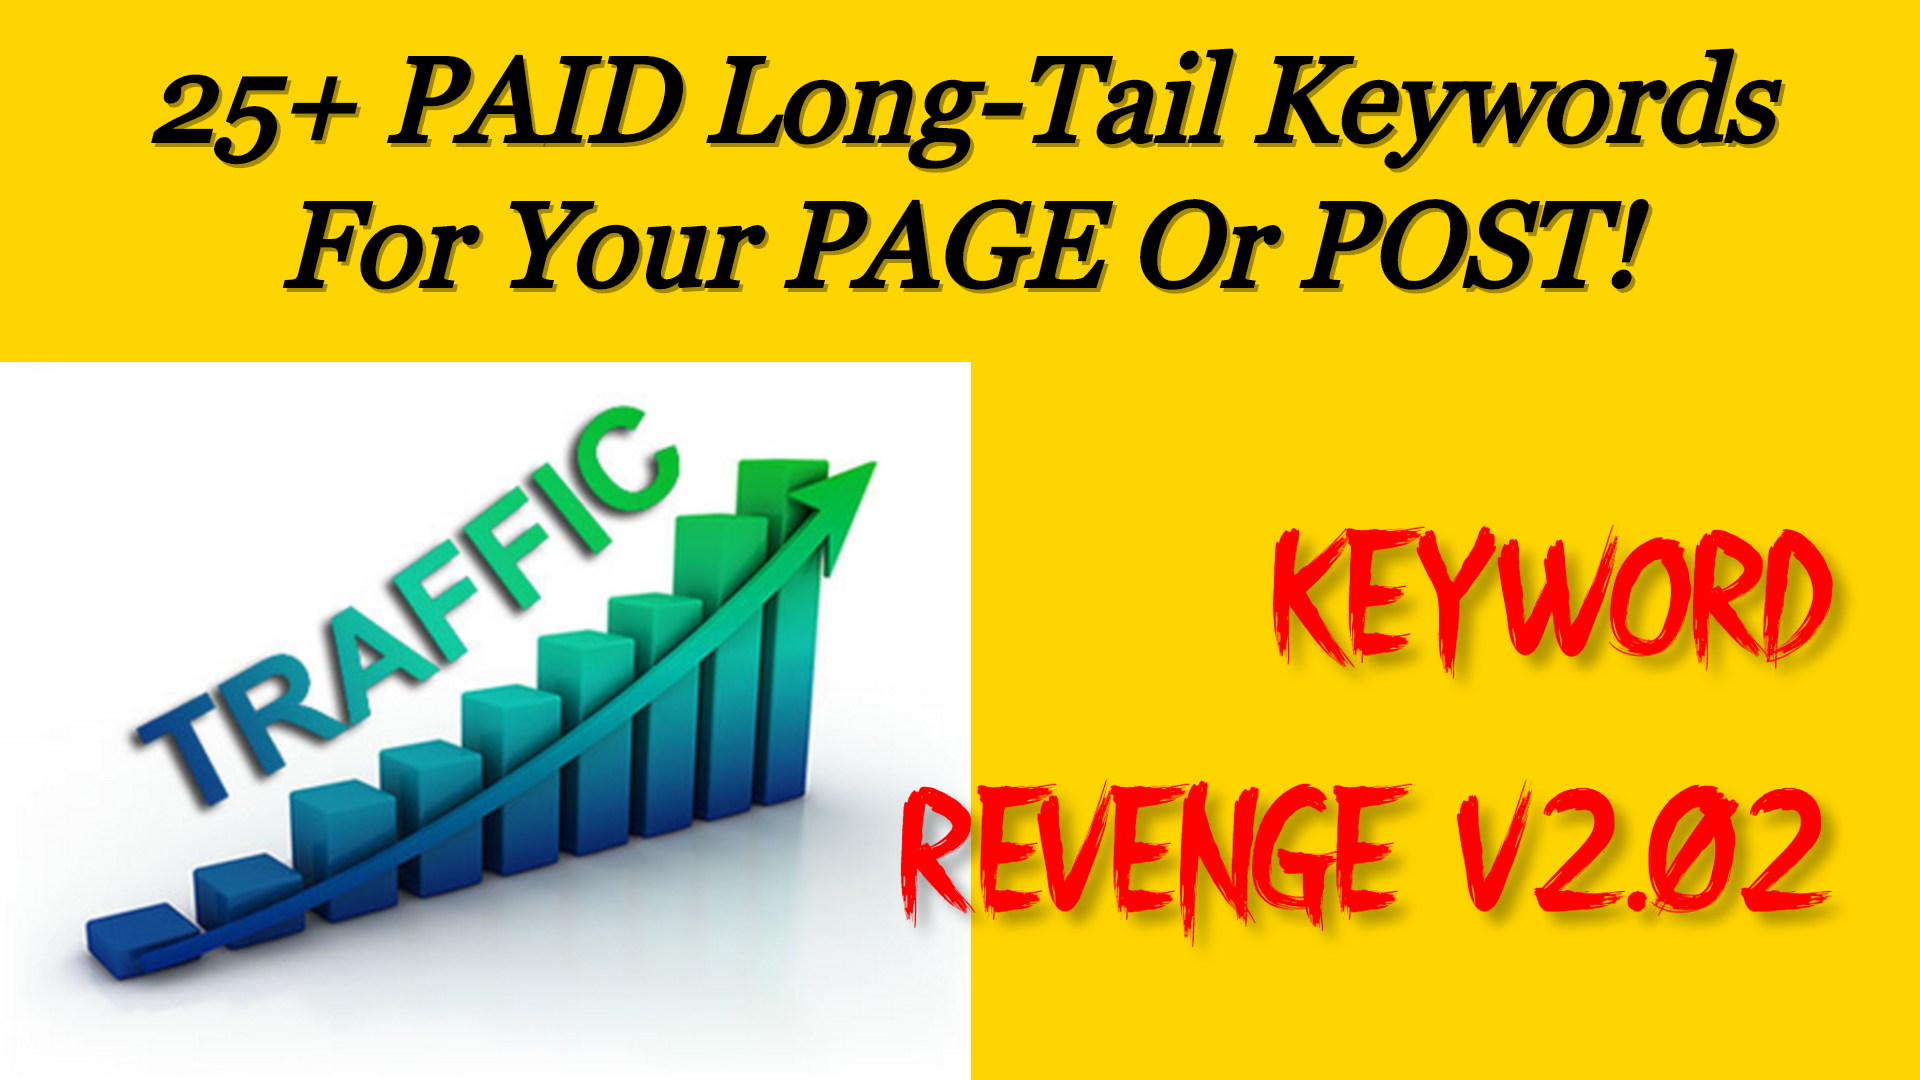 25+ PAID LONG TAIL HIGH CONVERSION KEYWORDS